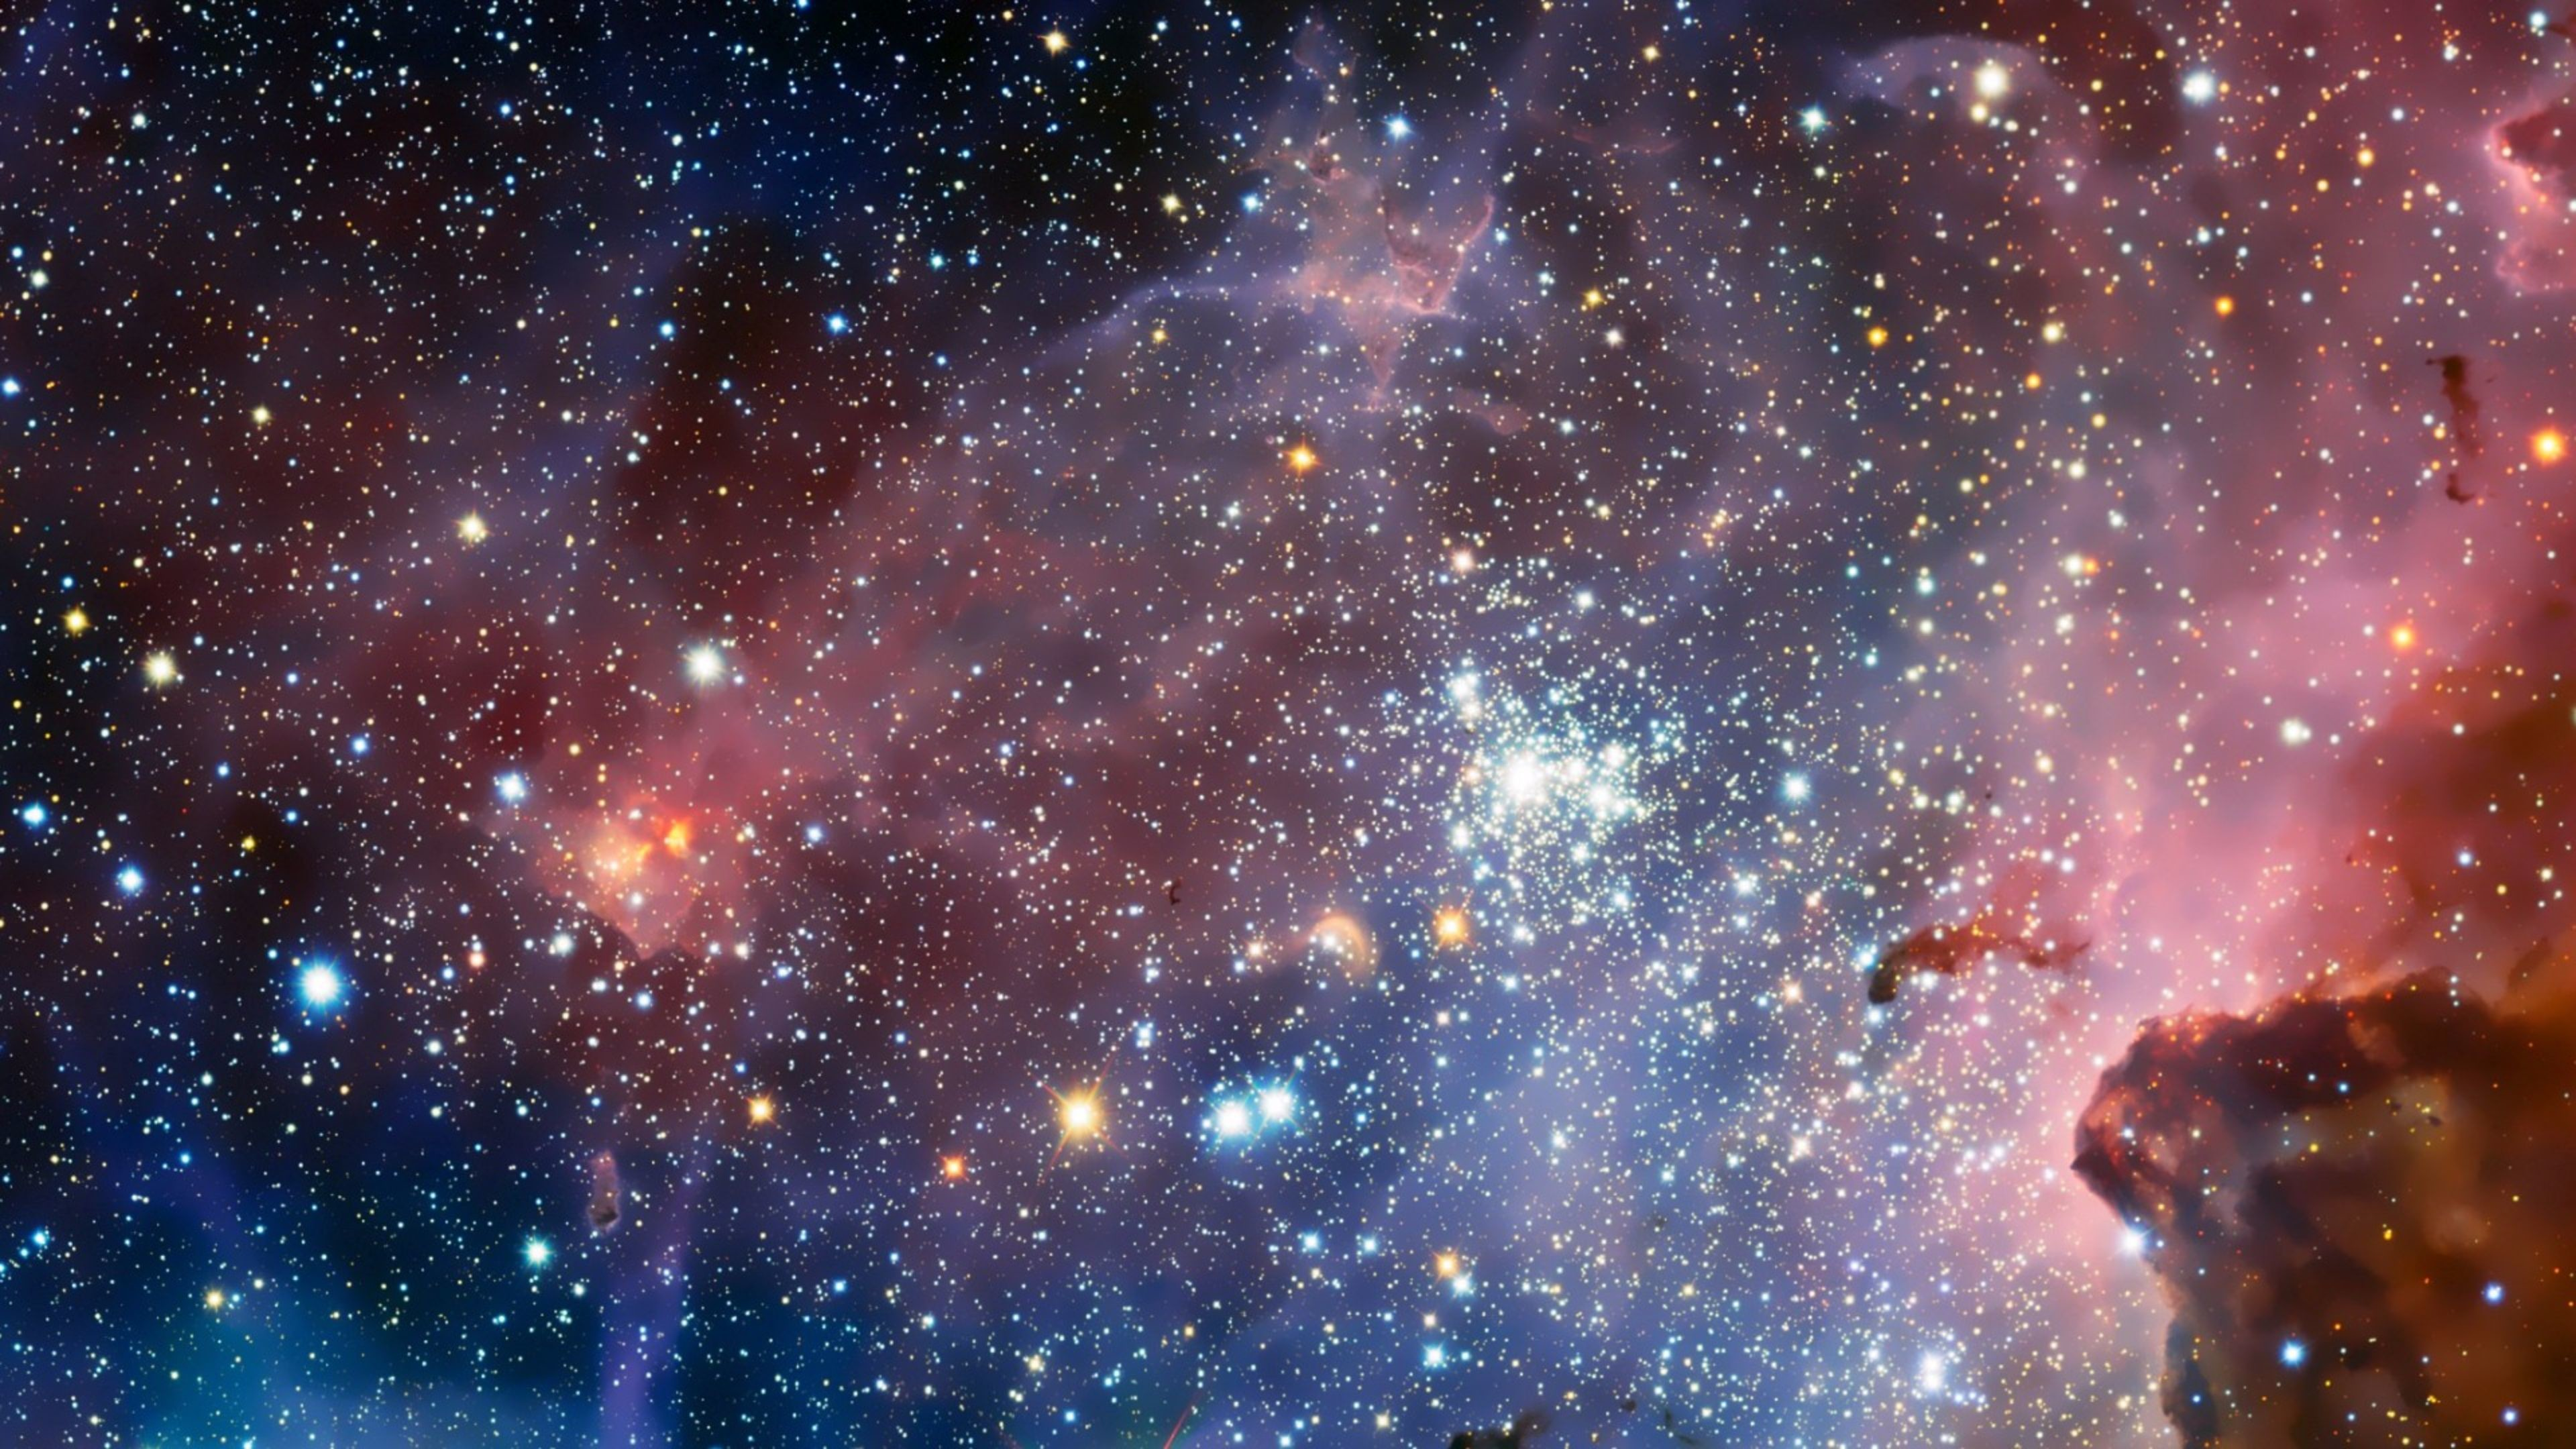 Deep space wallpaper background 59 images - Best space wallpapers 4k ...